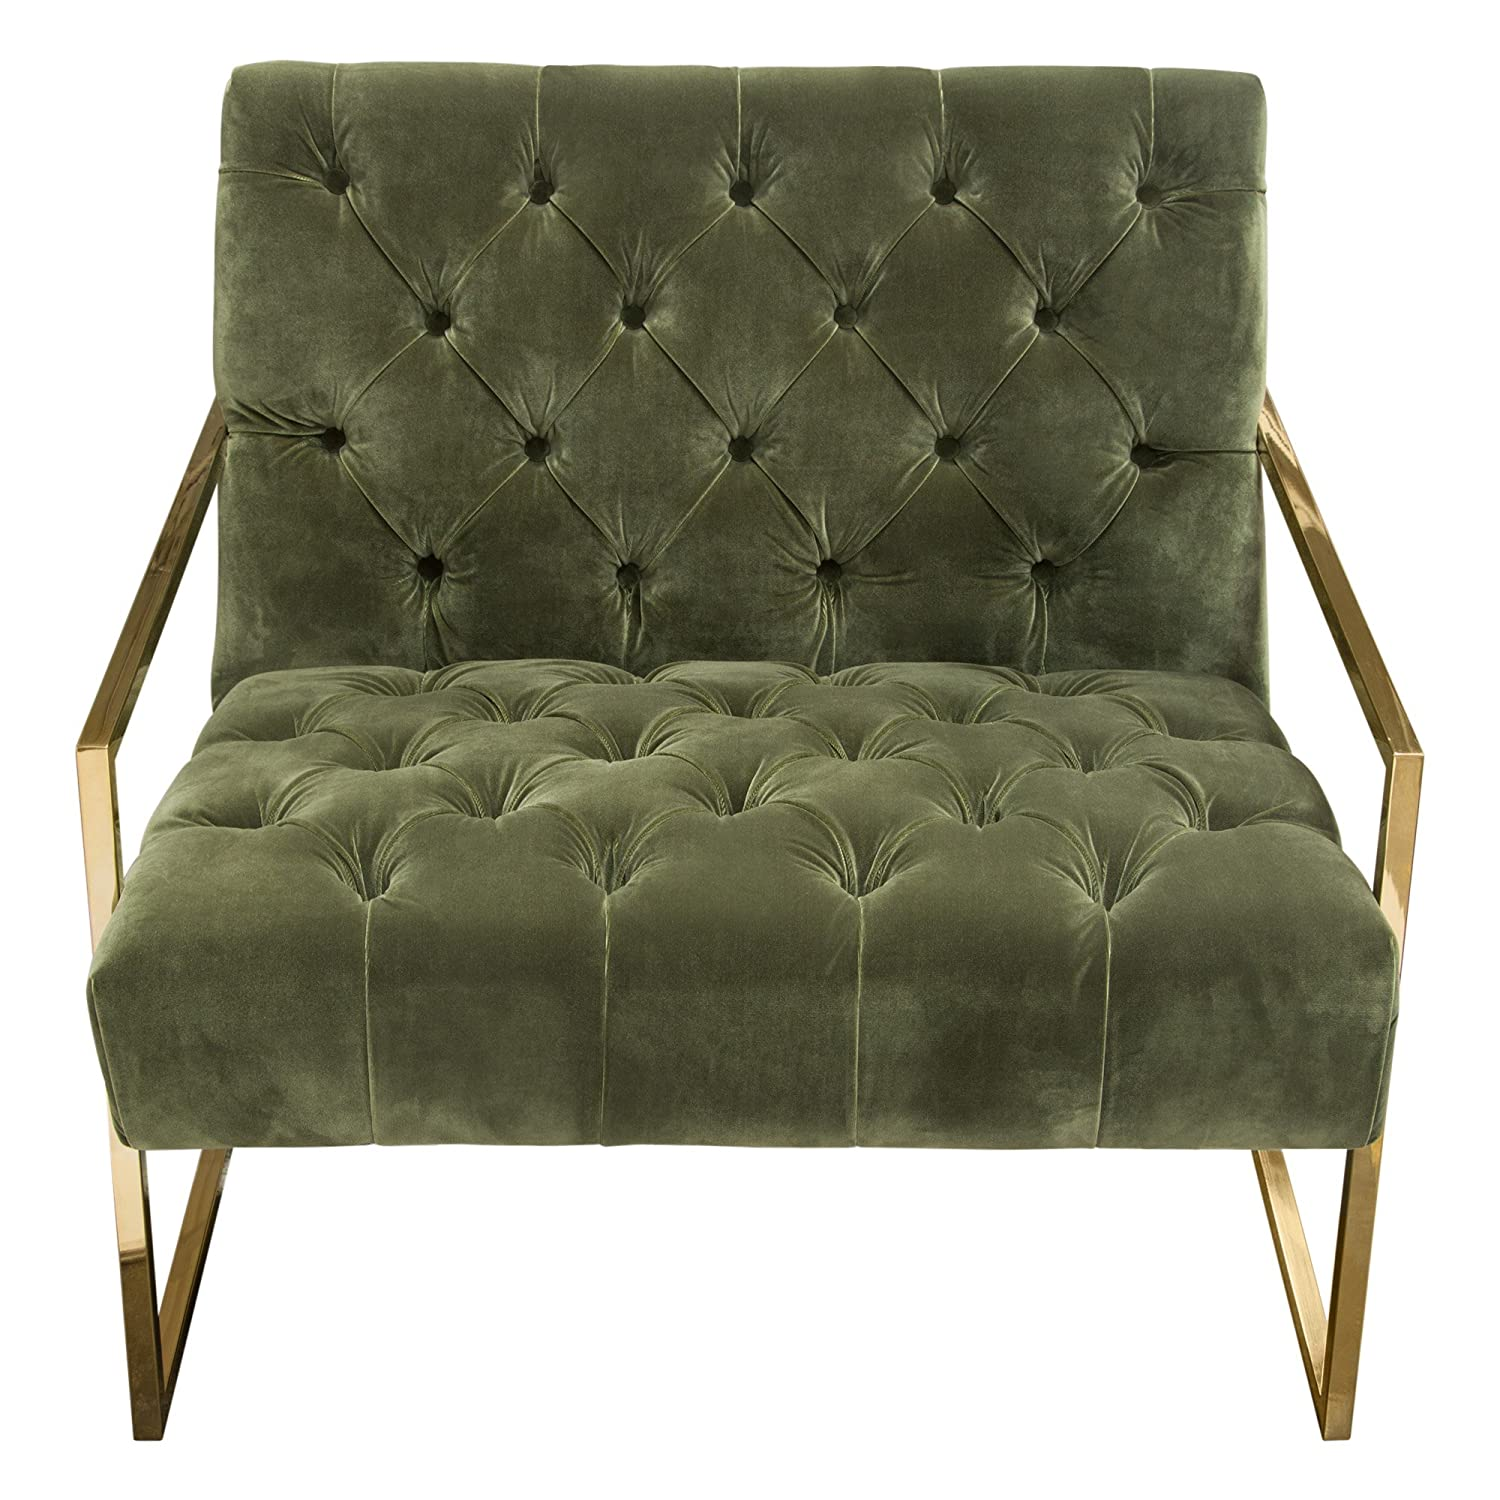 Amazon com diamond furniture luxechgn luxe accent chair in olive green tufted velvet fabric with polished gold stainless steel frame kitchen dining